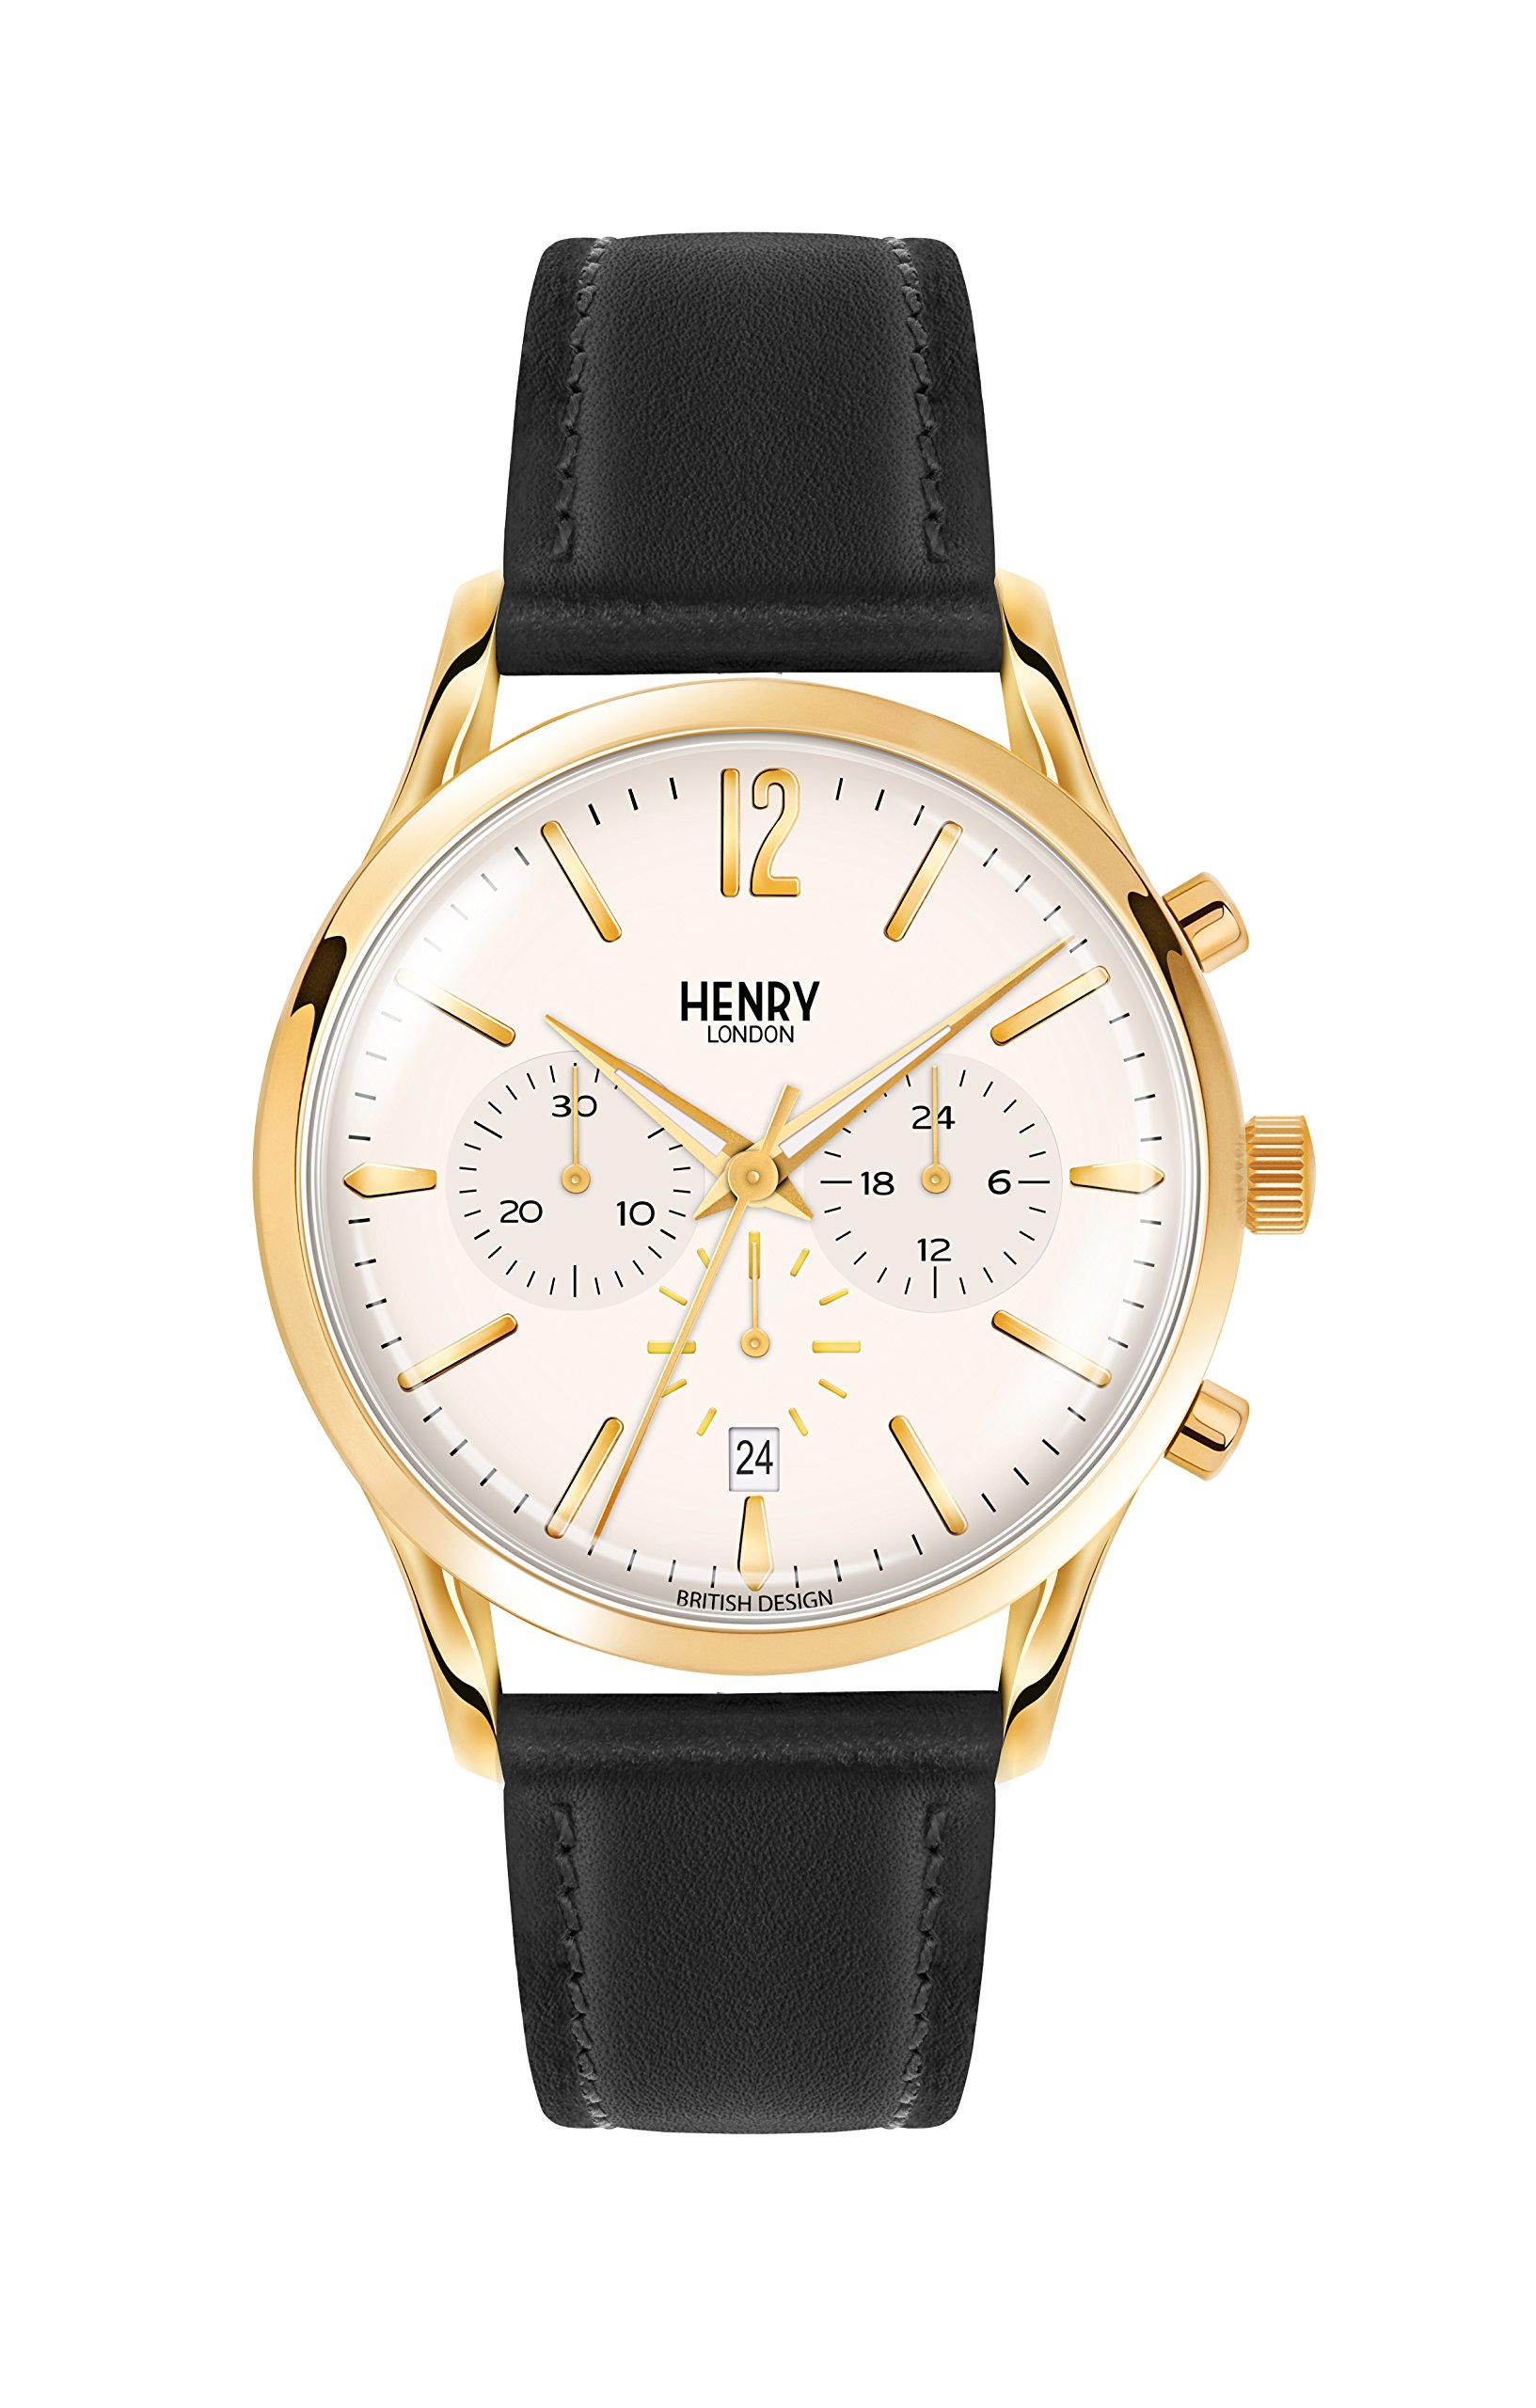 Henry London Unisex Westminster Quartz Watch with Beige Dial Chronograph Display and Black Leather Strap